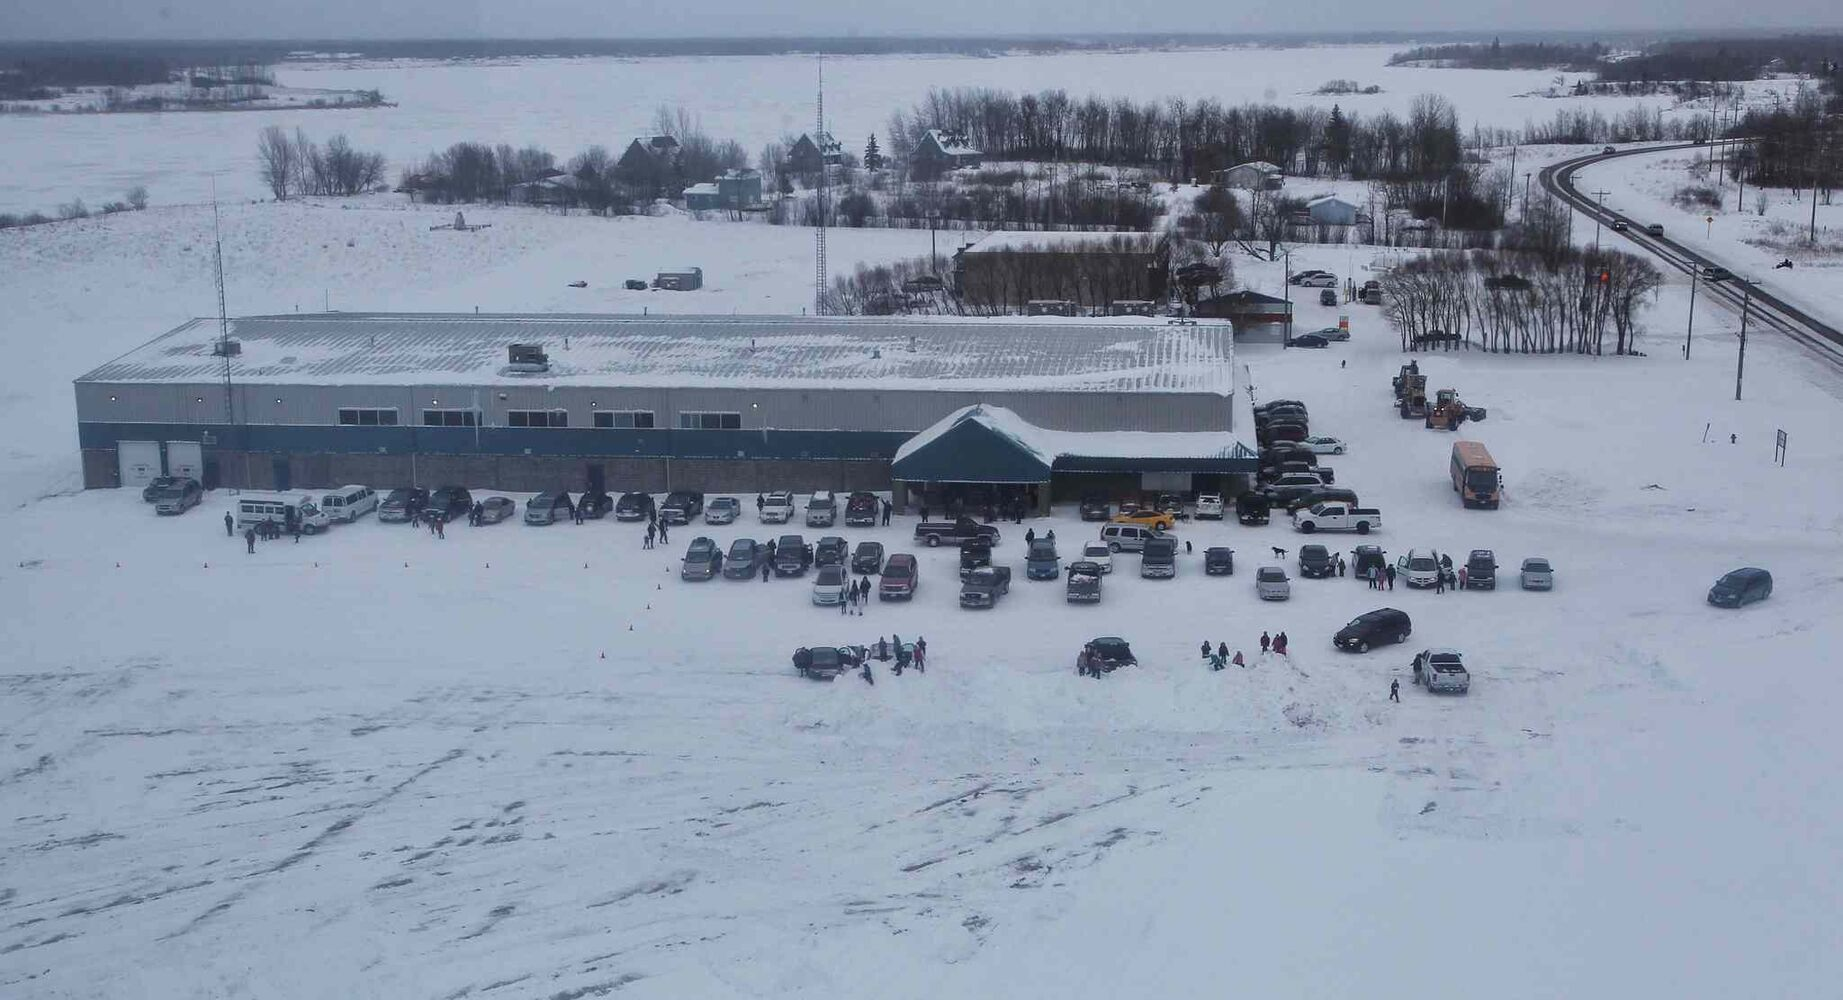 The crowds gather at the Sagkeeng Arena Multi-Plex as Santa's helicopter flies in for a landing at Sagkeeng First Nation during the Santa Express tour.